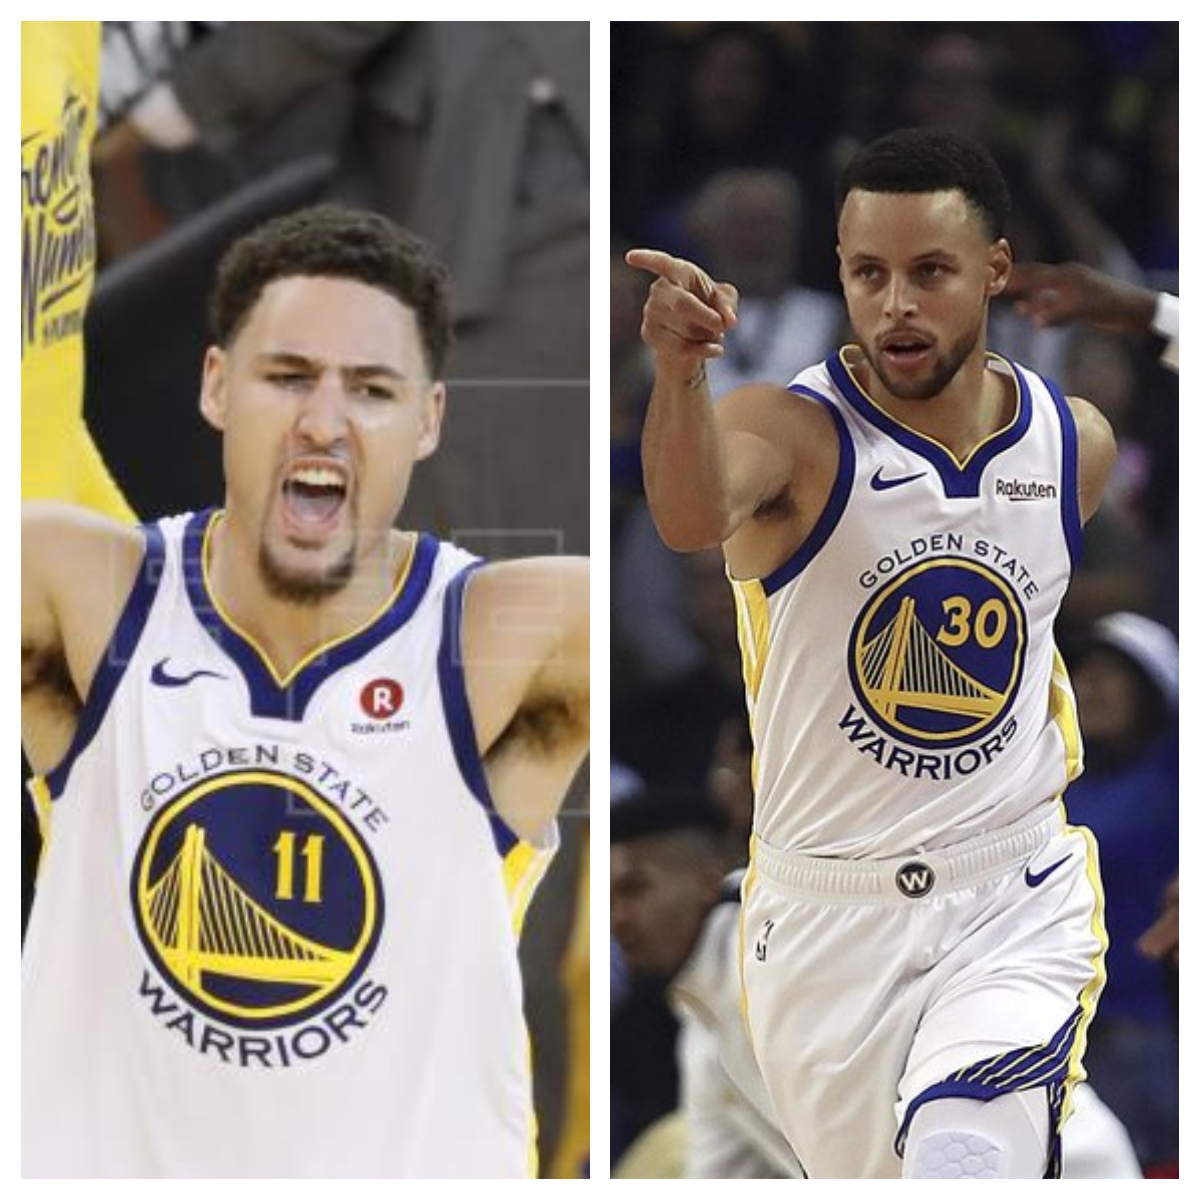 Stephen Curry y Klay Thompson se unen a las protestas por la justicia racial